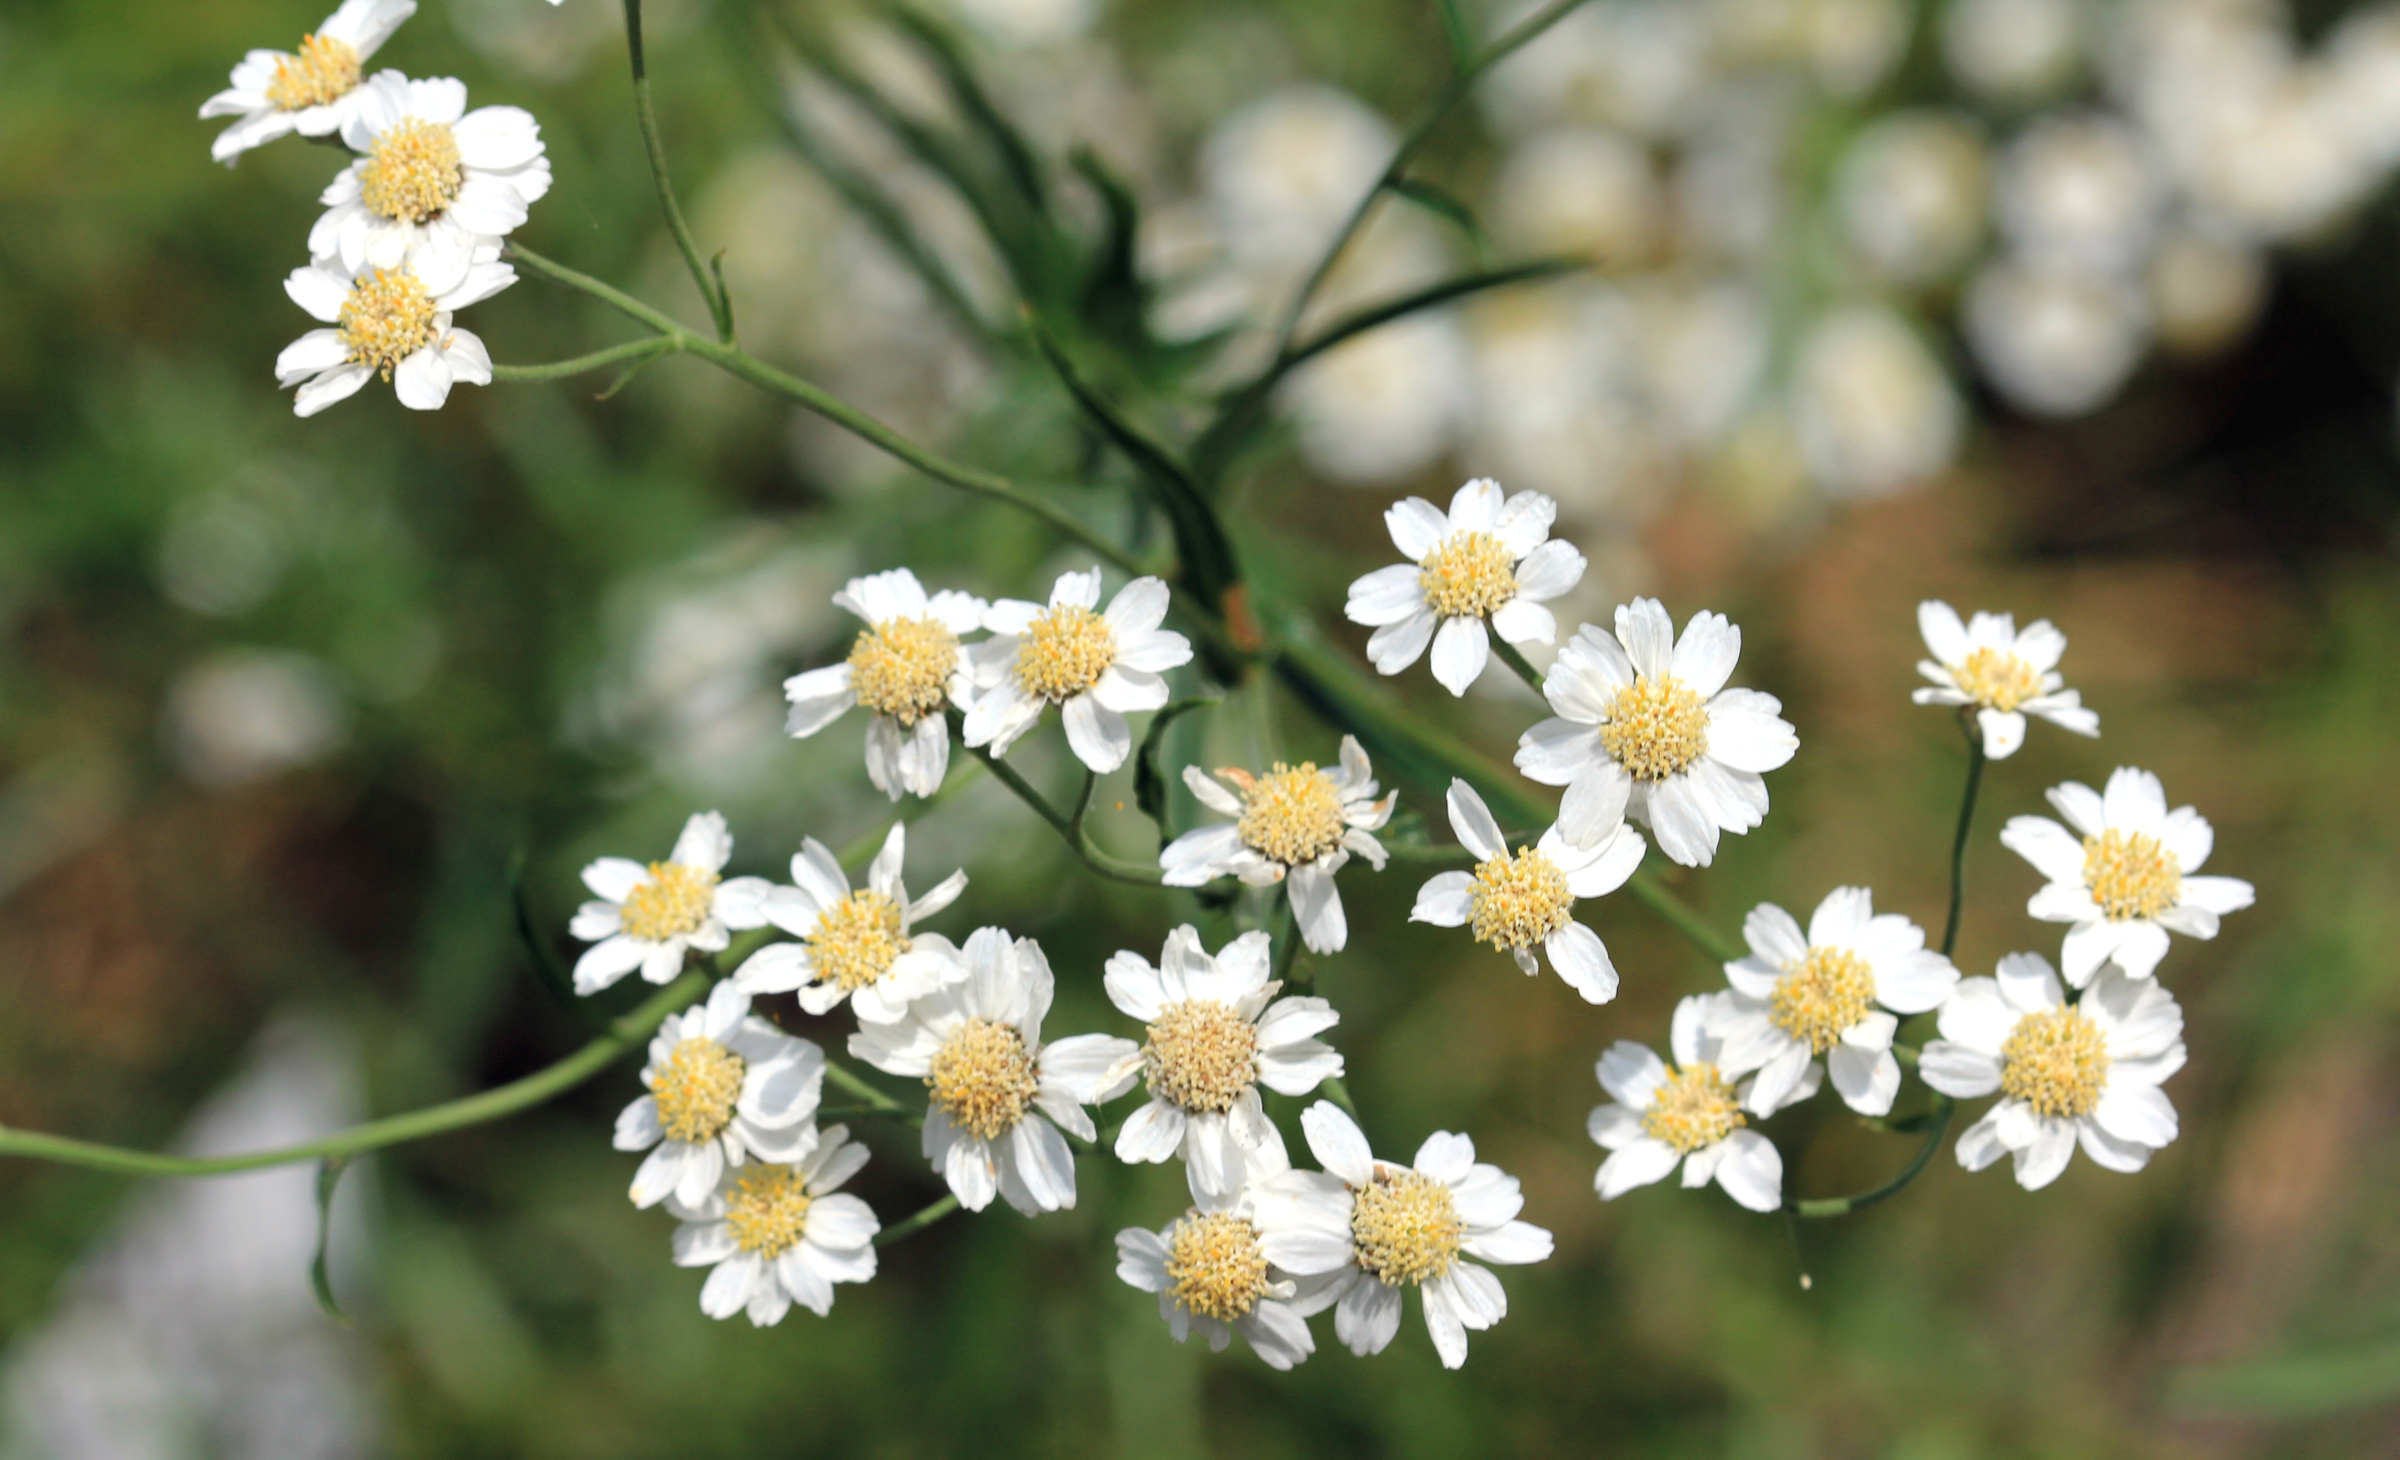 The white and yellow flowers of Sneezewort (Achillea ptarmica)